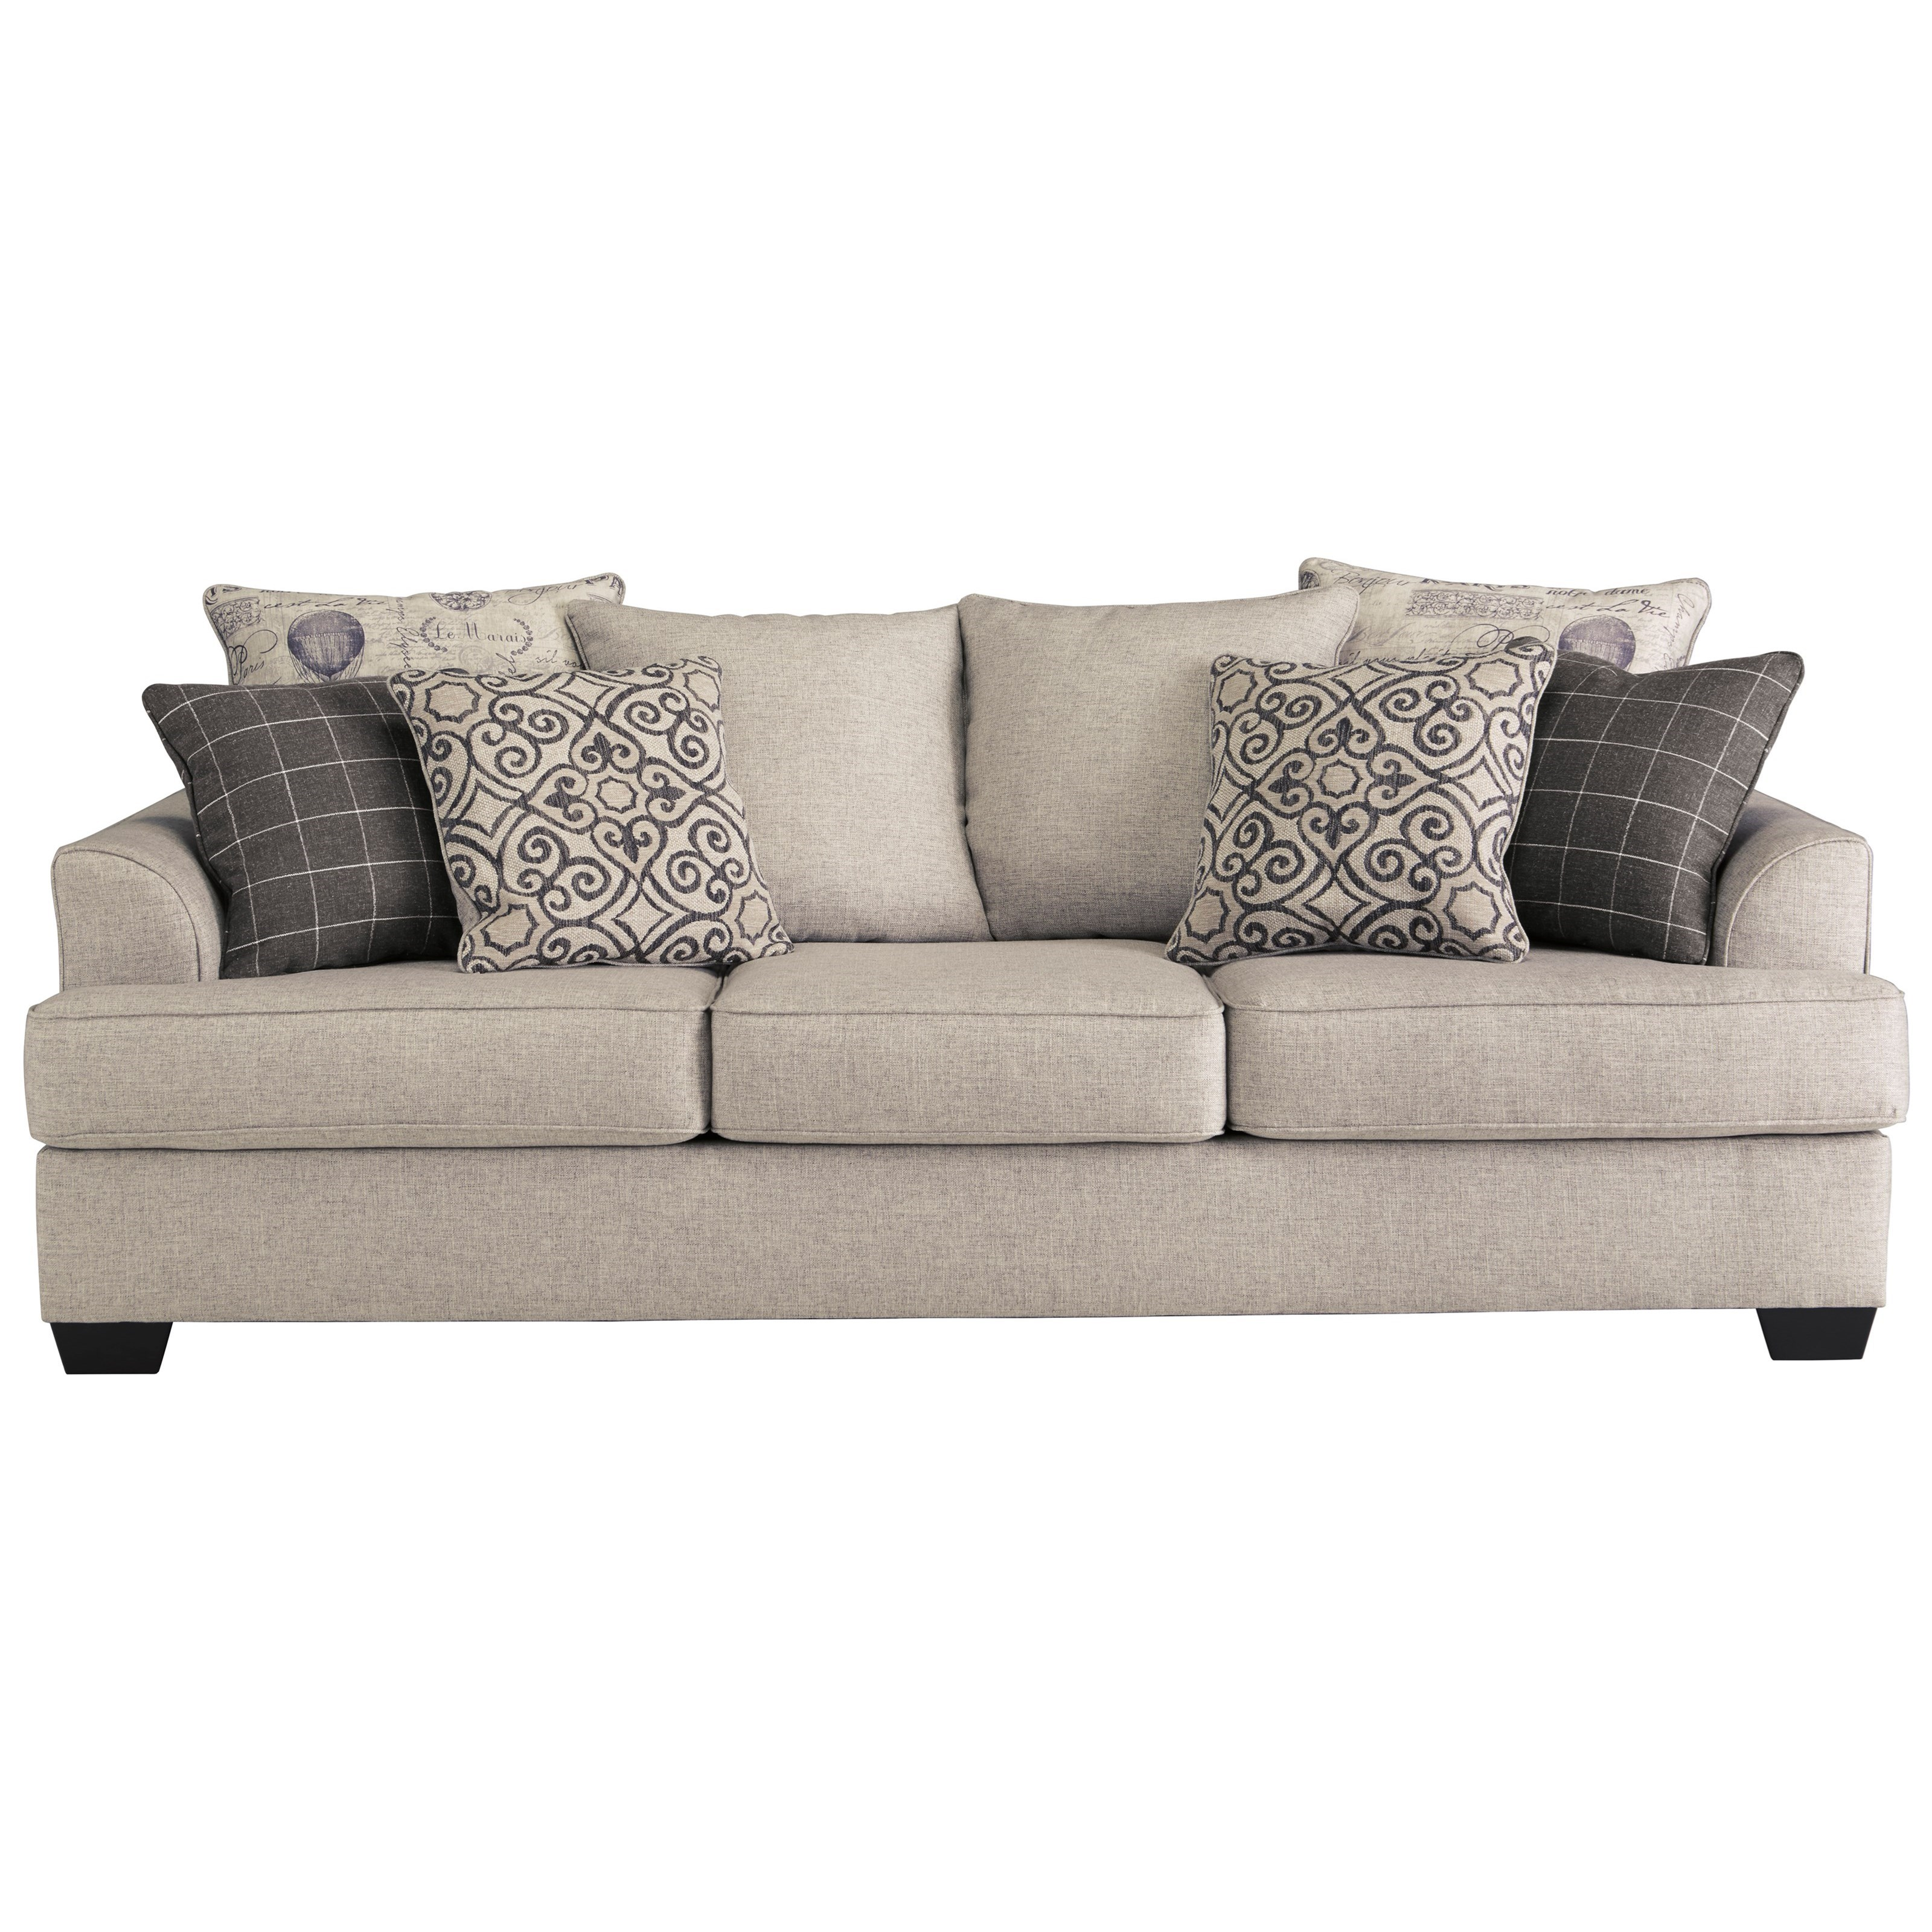 Vintage Couch Velletri Relaxed Vintage Sofa With 4 Decorative Pillows By Signature Design By Ashley At Royal Furniture